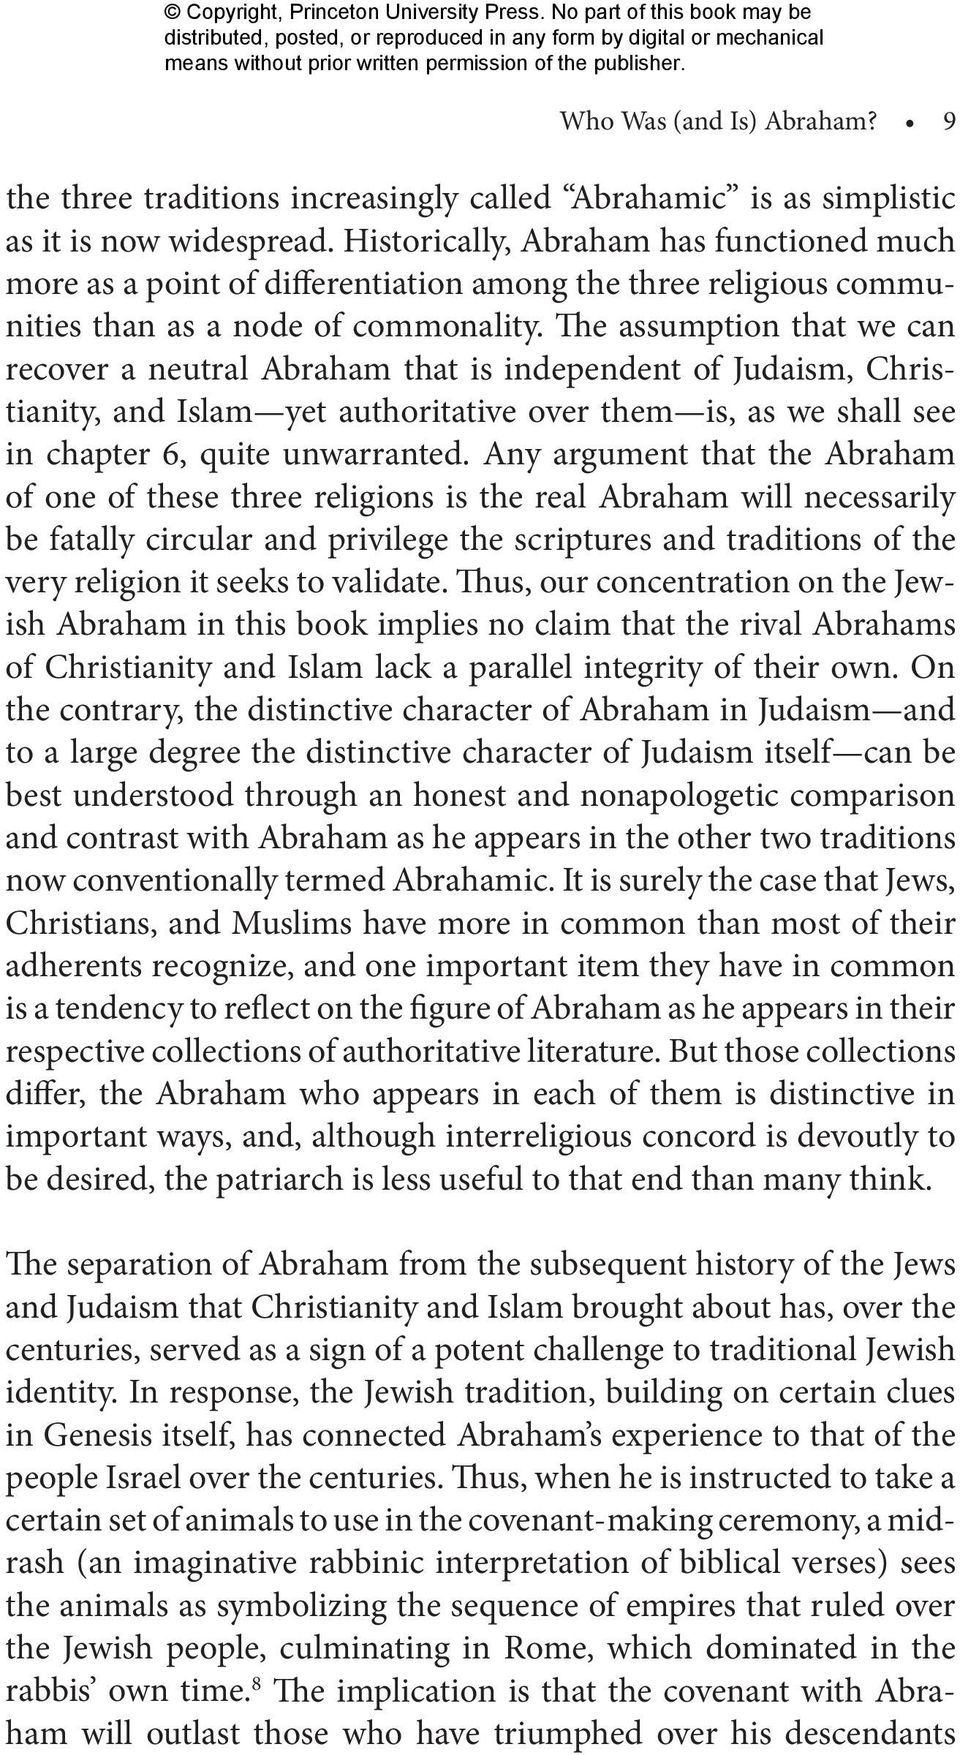 The assumption that we can recover a neutral Abraham that is independent of Judaism, Christianity, and Islam yet authoritative over them is, as we shall see in chapter 6, quite unwarranted.